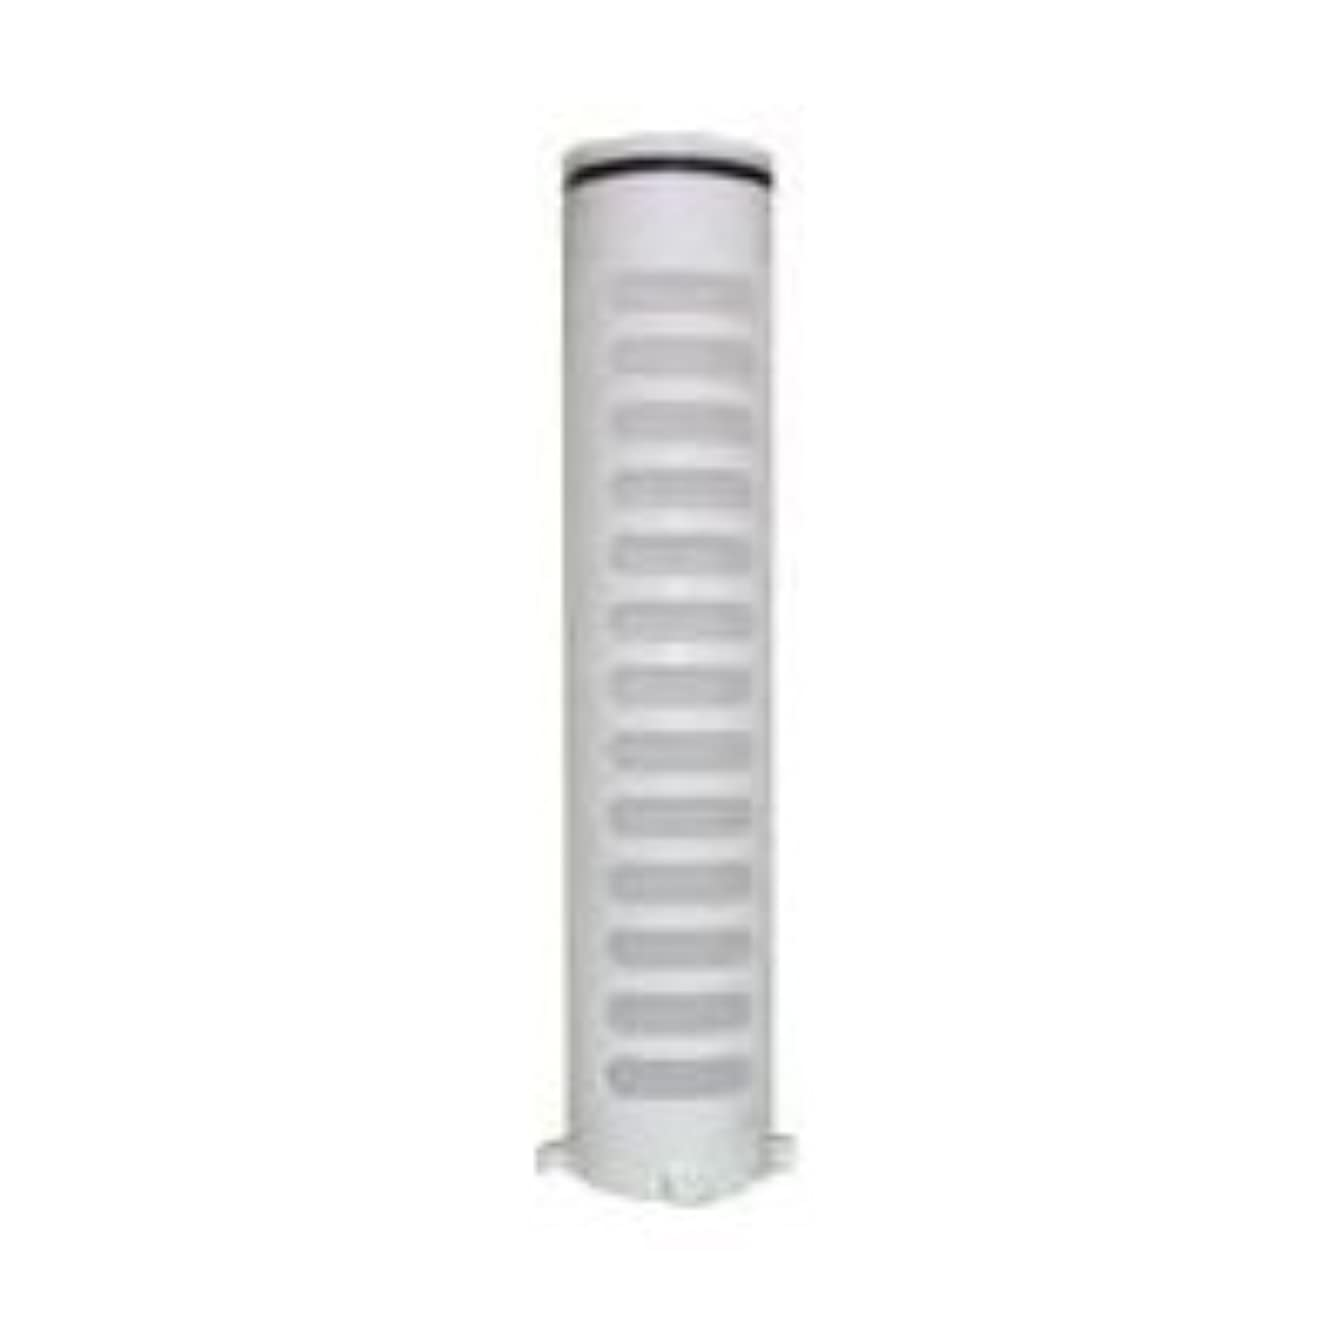 Fs-1-12-60 Rusco Fs-1-1/2-60 Spin-Down Polyester Replacement Filter (FS-1-12-60)